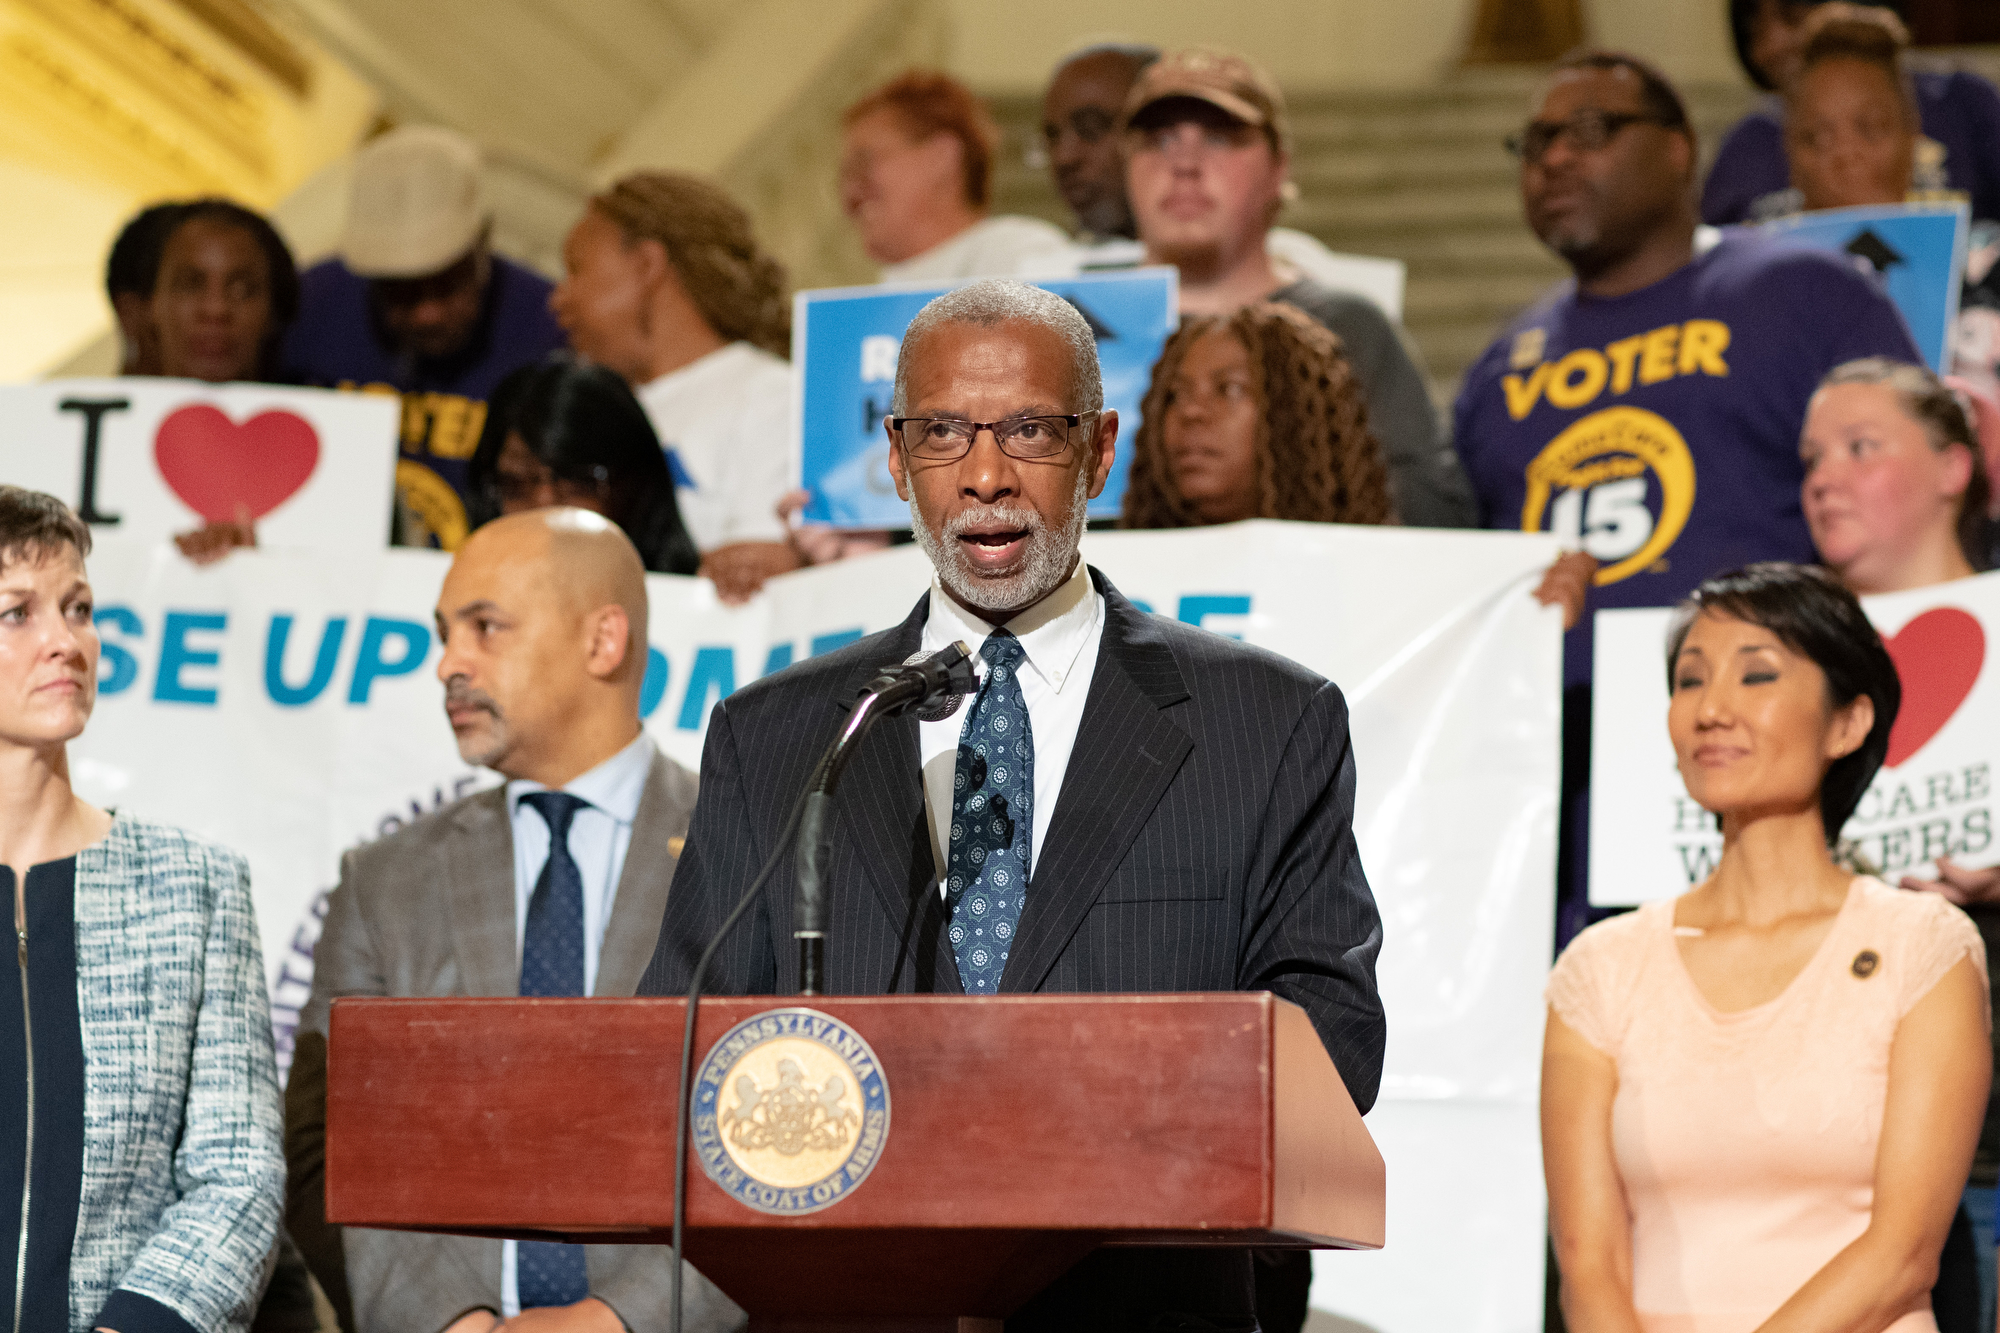 June 17, 2019 – Senator Haywood attends a rally  to call for a $15 minimum wage in Pennsylvania. Teresa Miller, Secretary of the state Department of Human Services,  focused on how a wage increase would specifically help home care workers who care for the sick and aging.